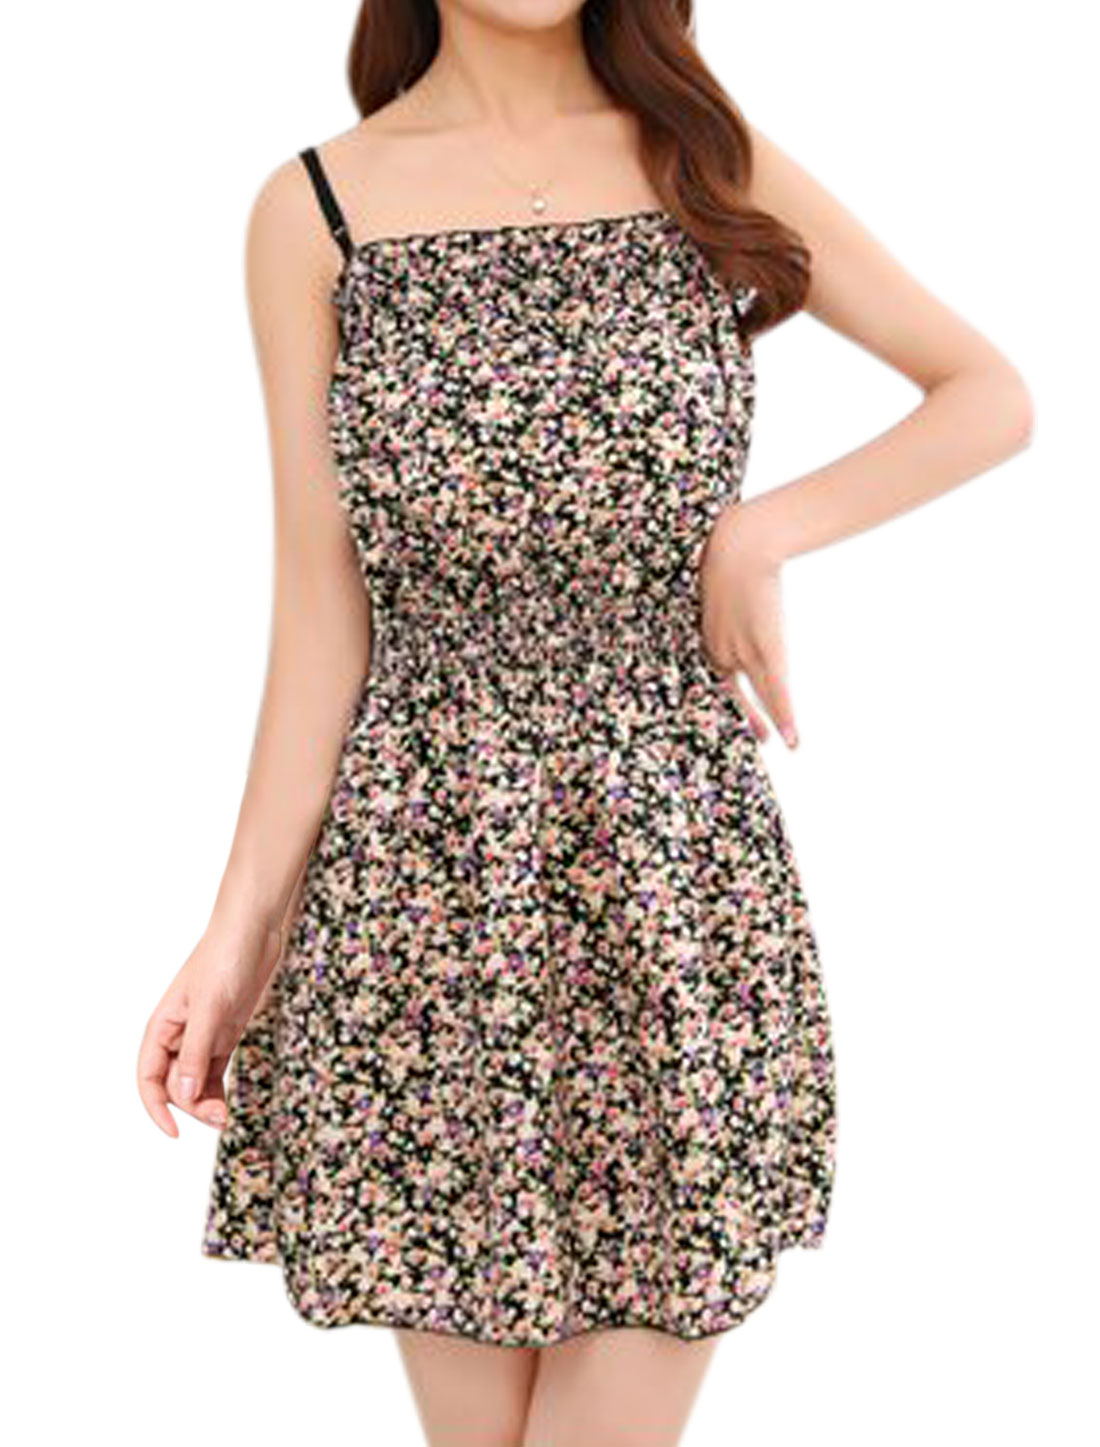 Ladies Floral Print Spaghetti Strap Casual Sundress Black Pink XS